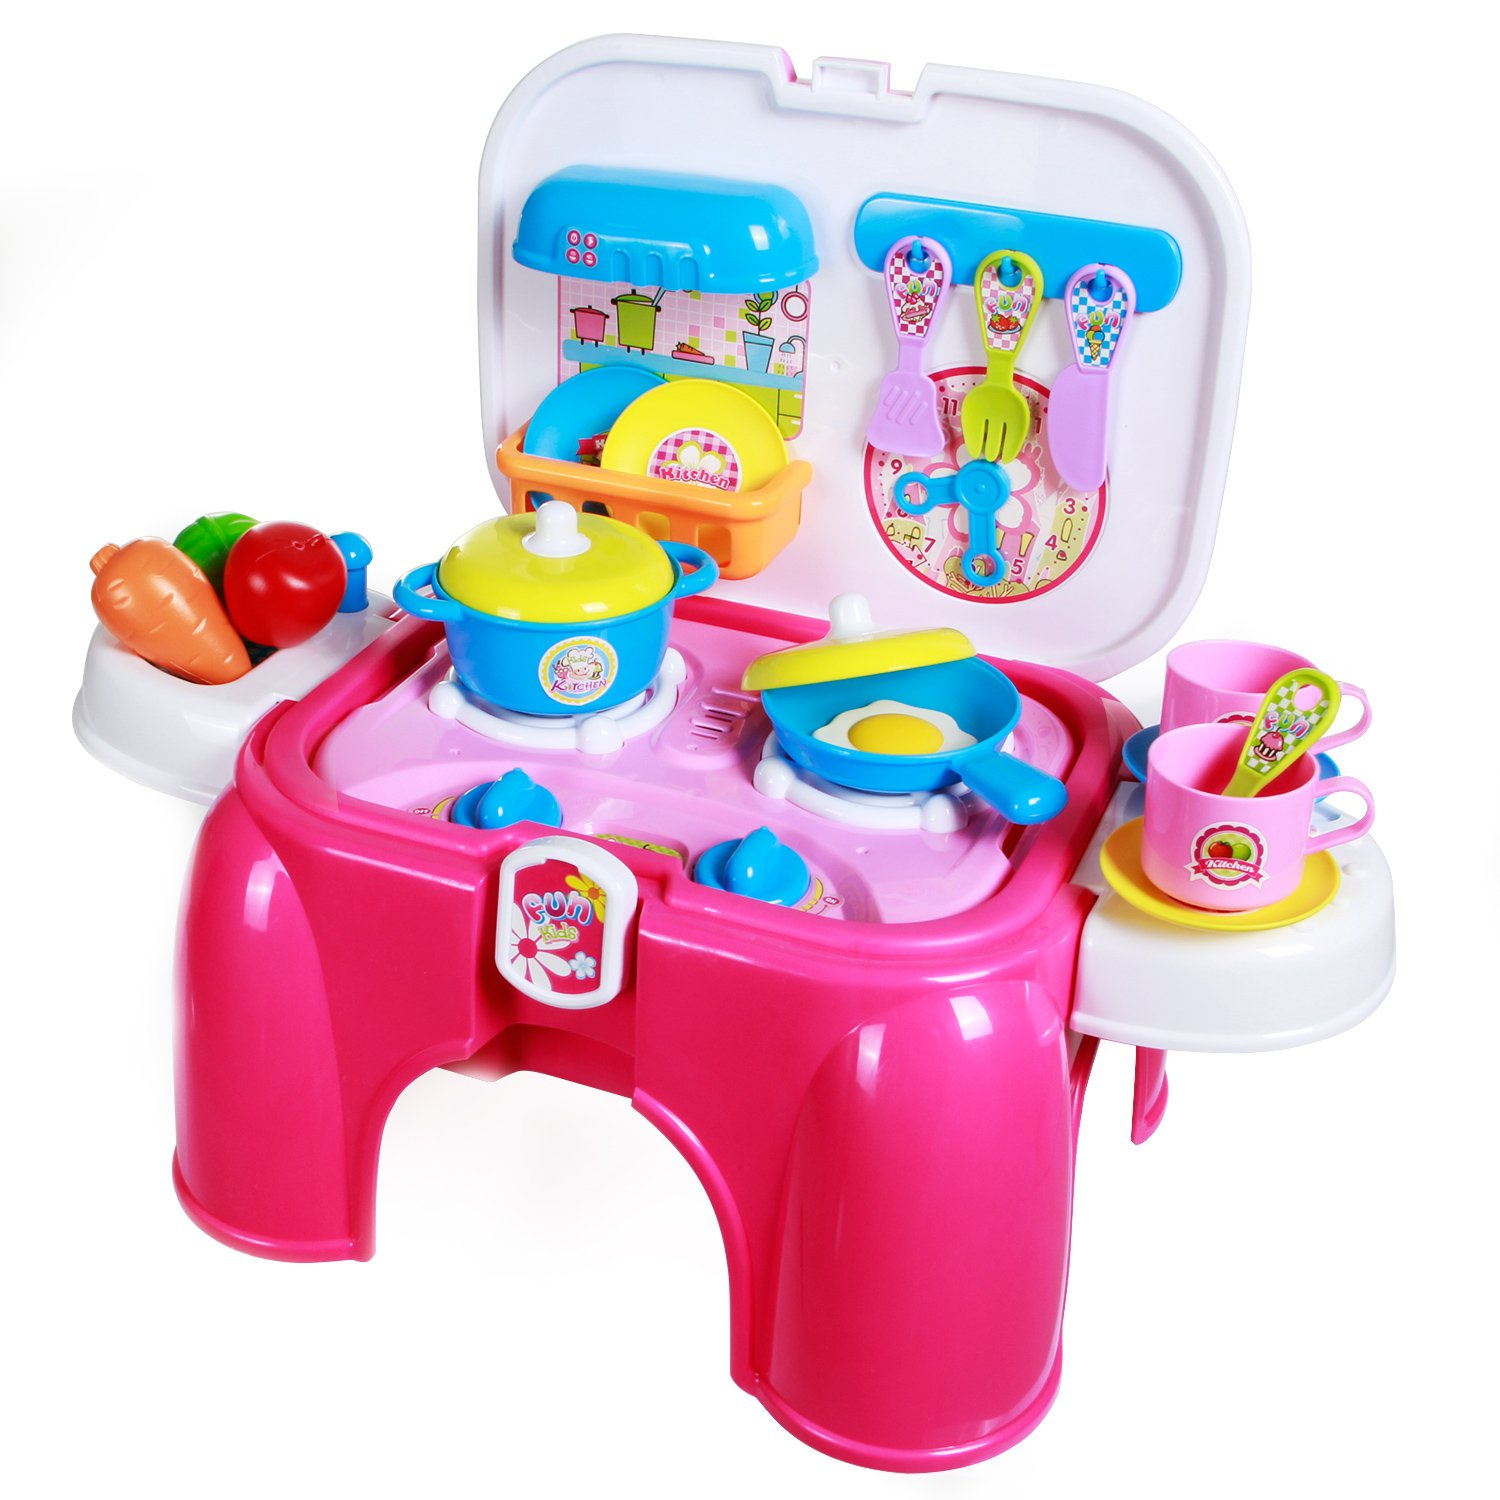 SGILE Kitchen Playset Toy Kids Pretend Cooking Food Set Multiple